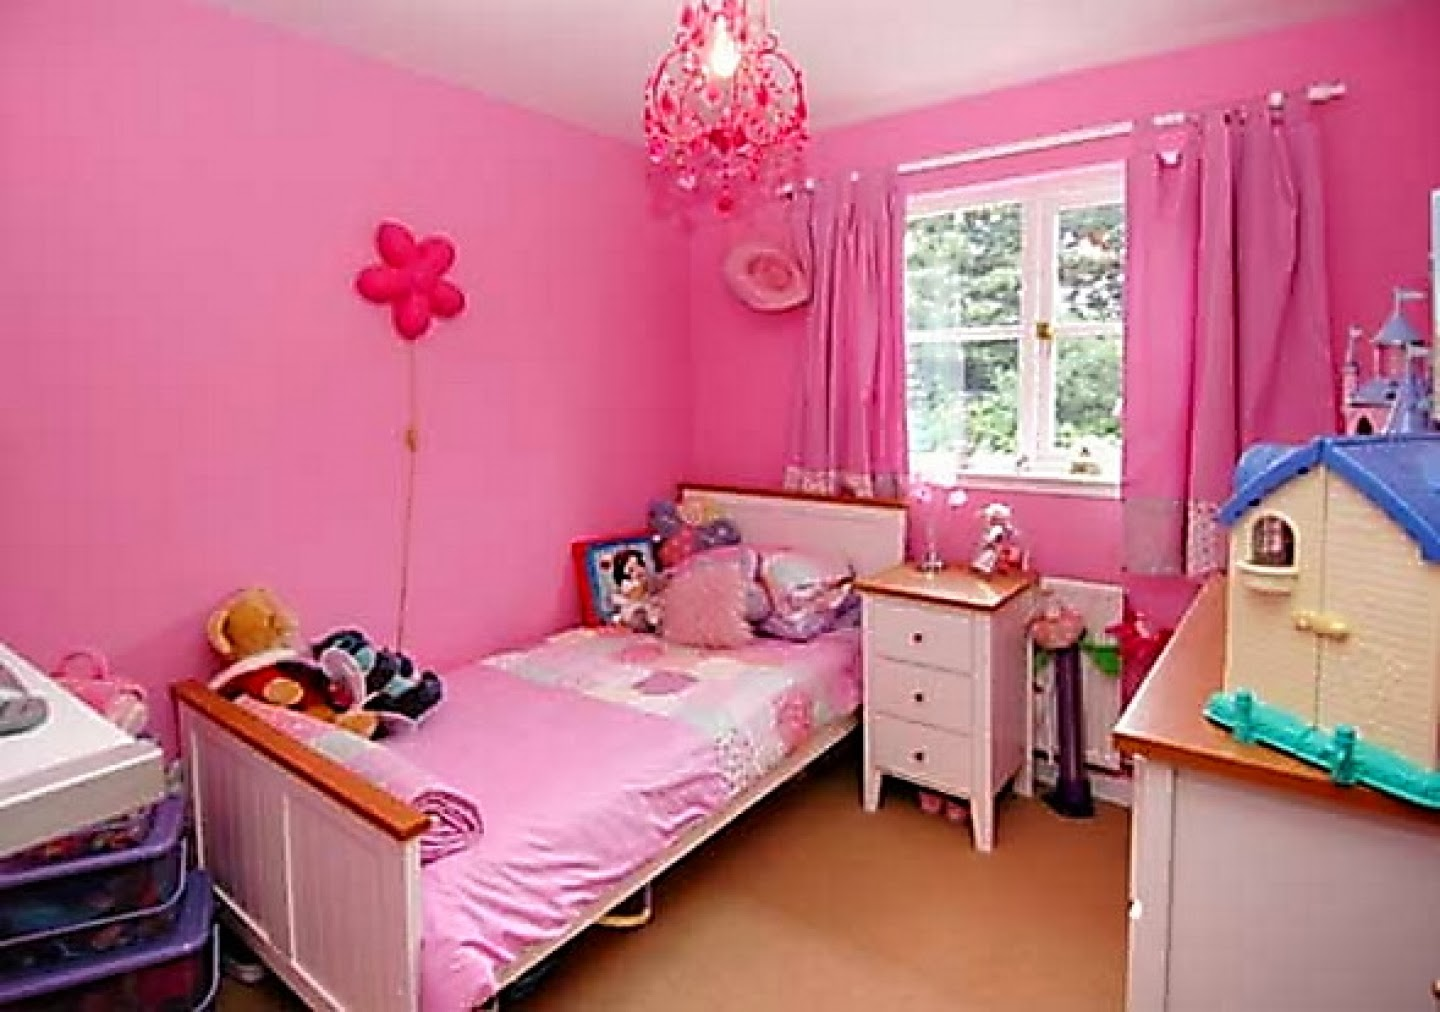 Bedroom paint ideas for young women - A Girl S Bedroom Is Her Sanctuary It Is A Space All Her Own In Which Bedroom Decorating Ideas For Young Adults Bedroom Ideas For Young Women Buzzle Web